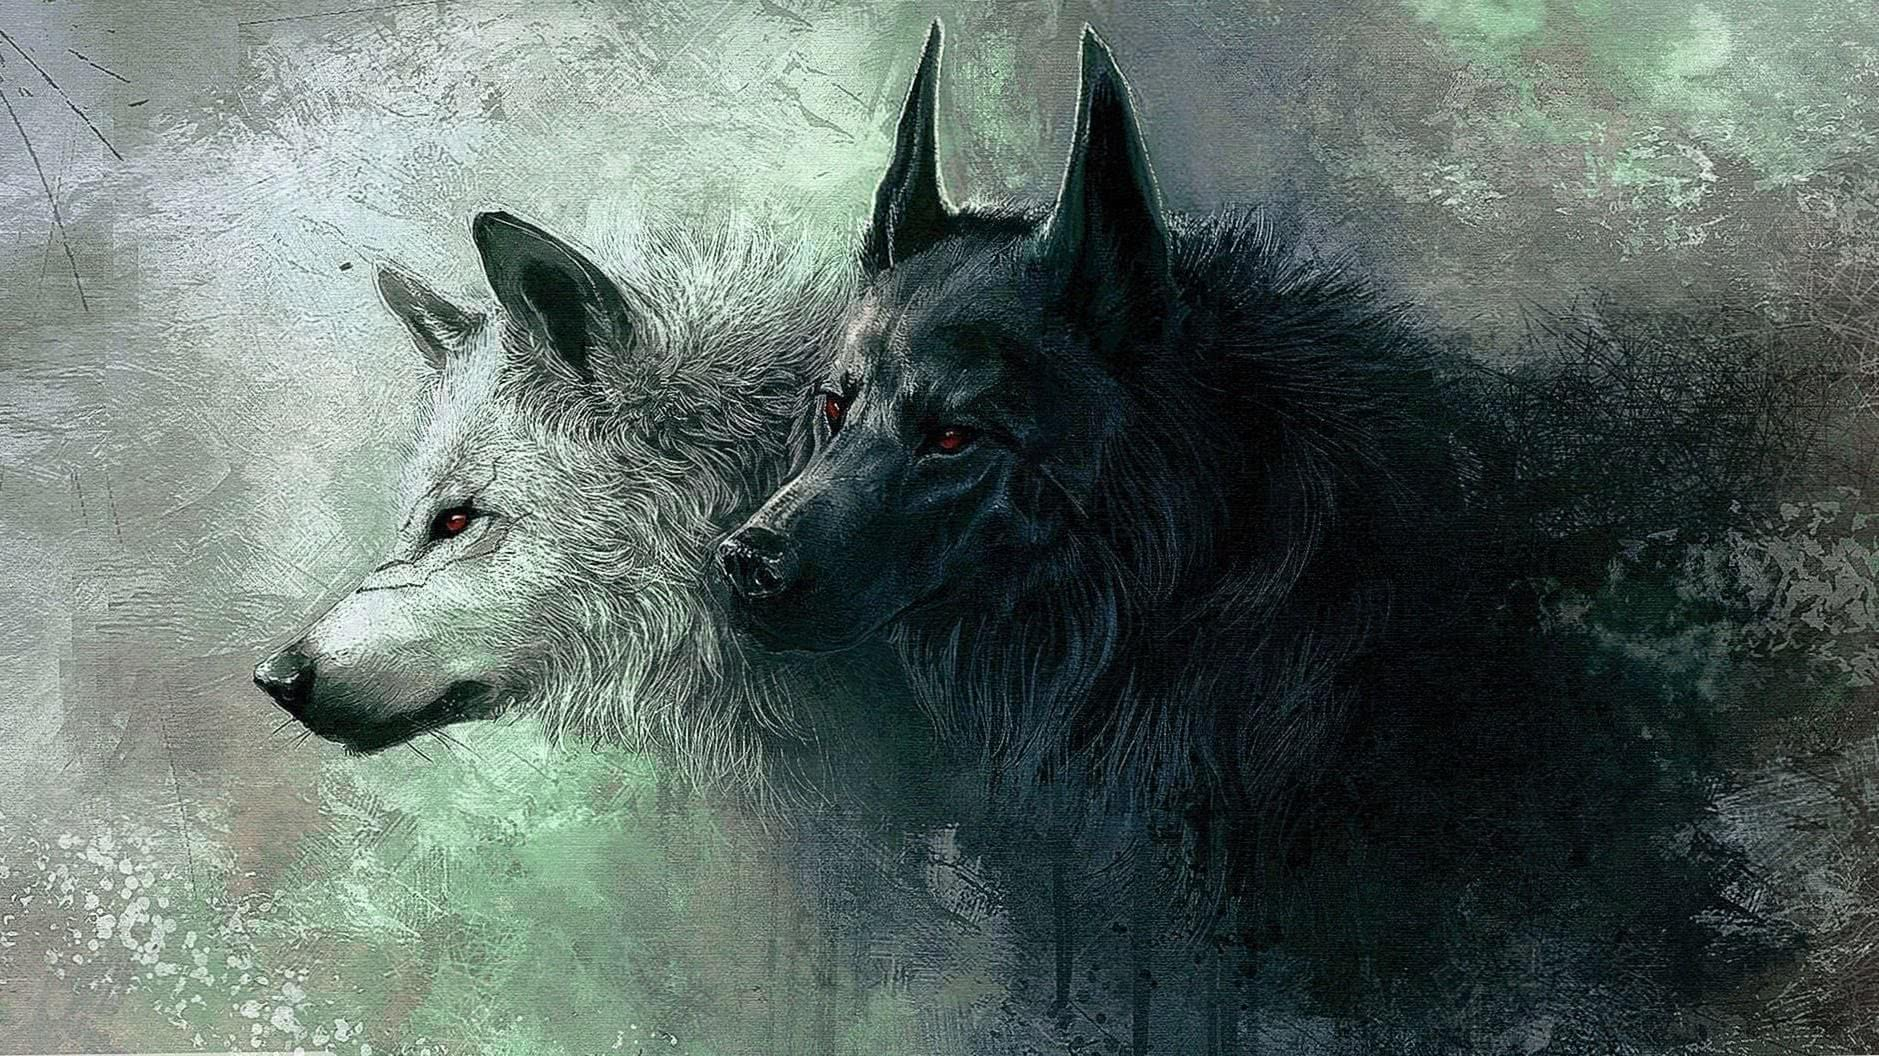 Hd Wallpapers 1366x768 Wolf Wolf Wallpaperspro